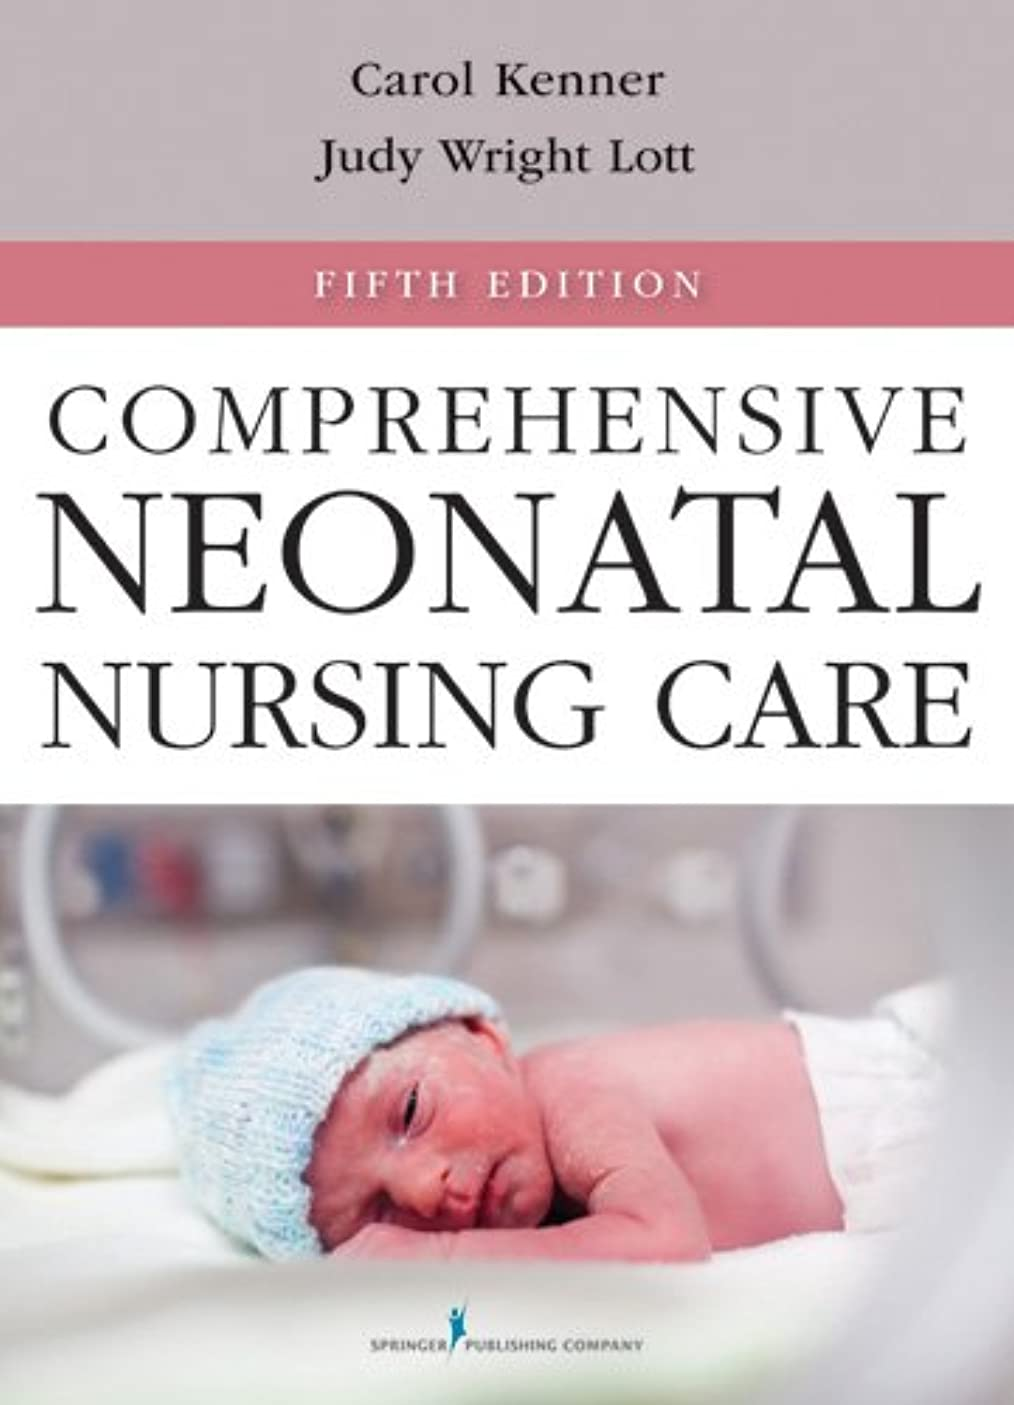 ディスカウント特別に主張するComprehensive Neonatal Nursing Care: Fifth Edition (Comprehensive Neonatal Nursing: A Physiologic Perspective (Kenner)) (English Edition)